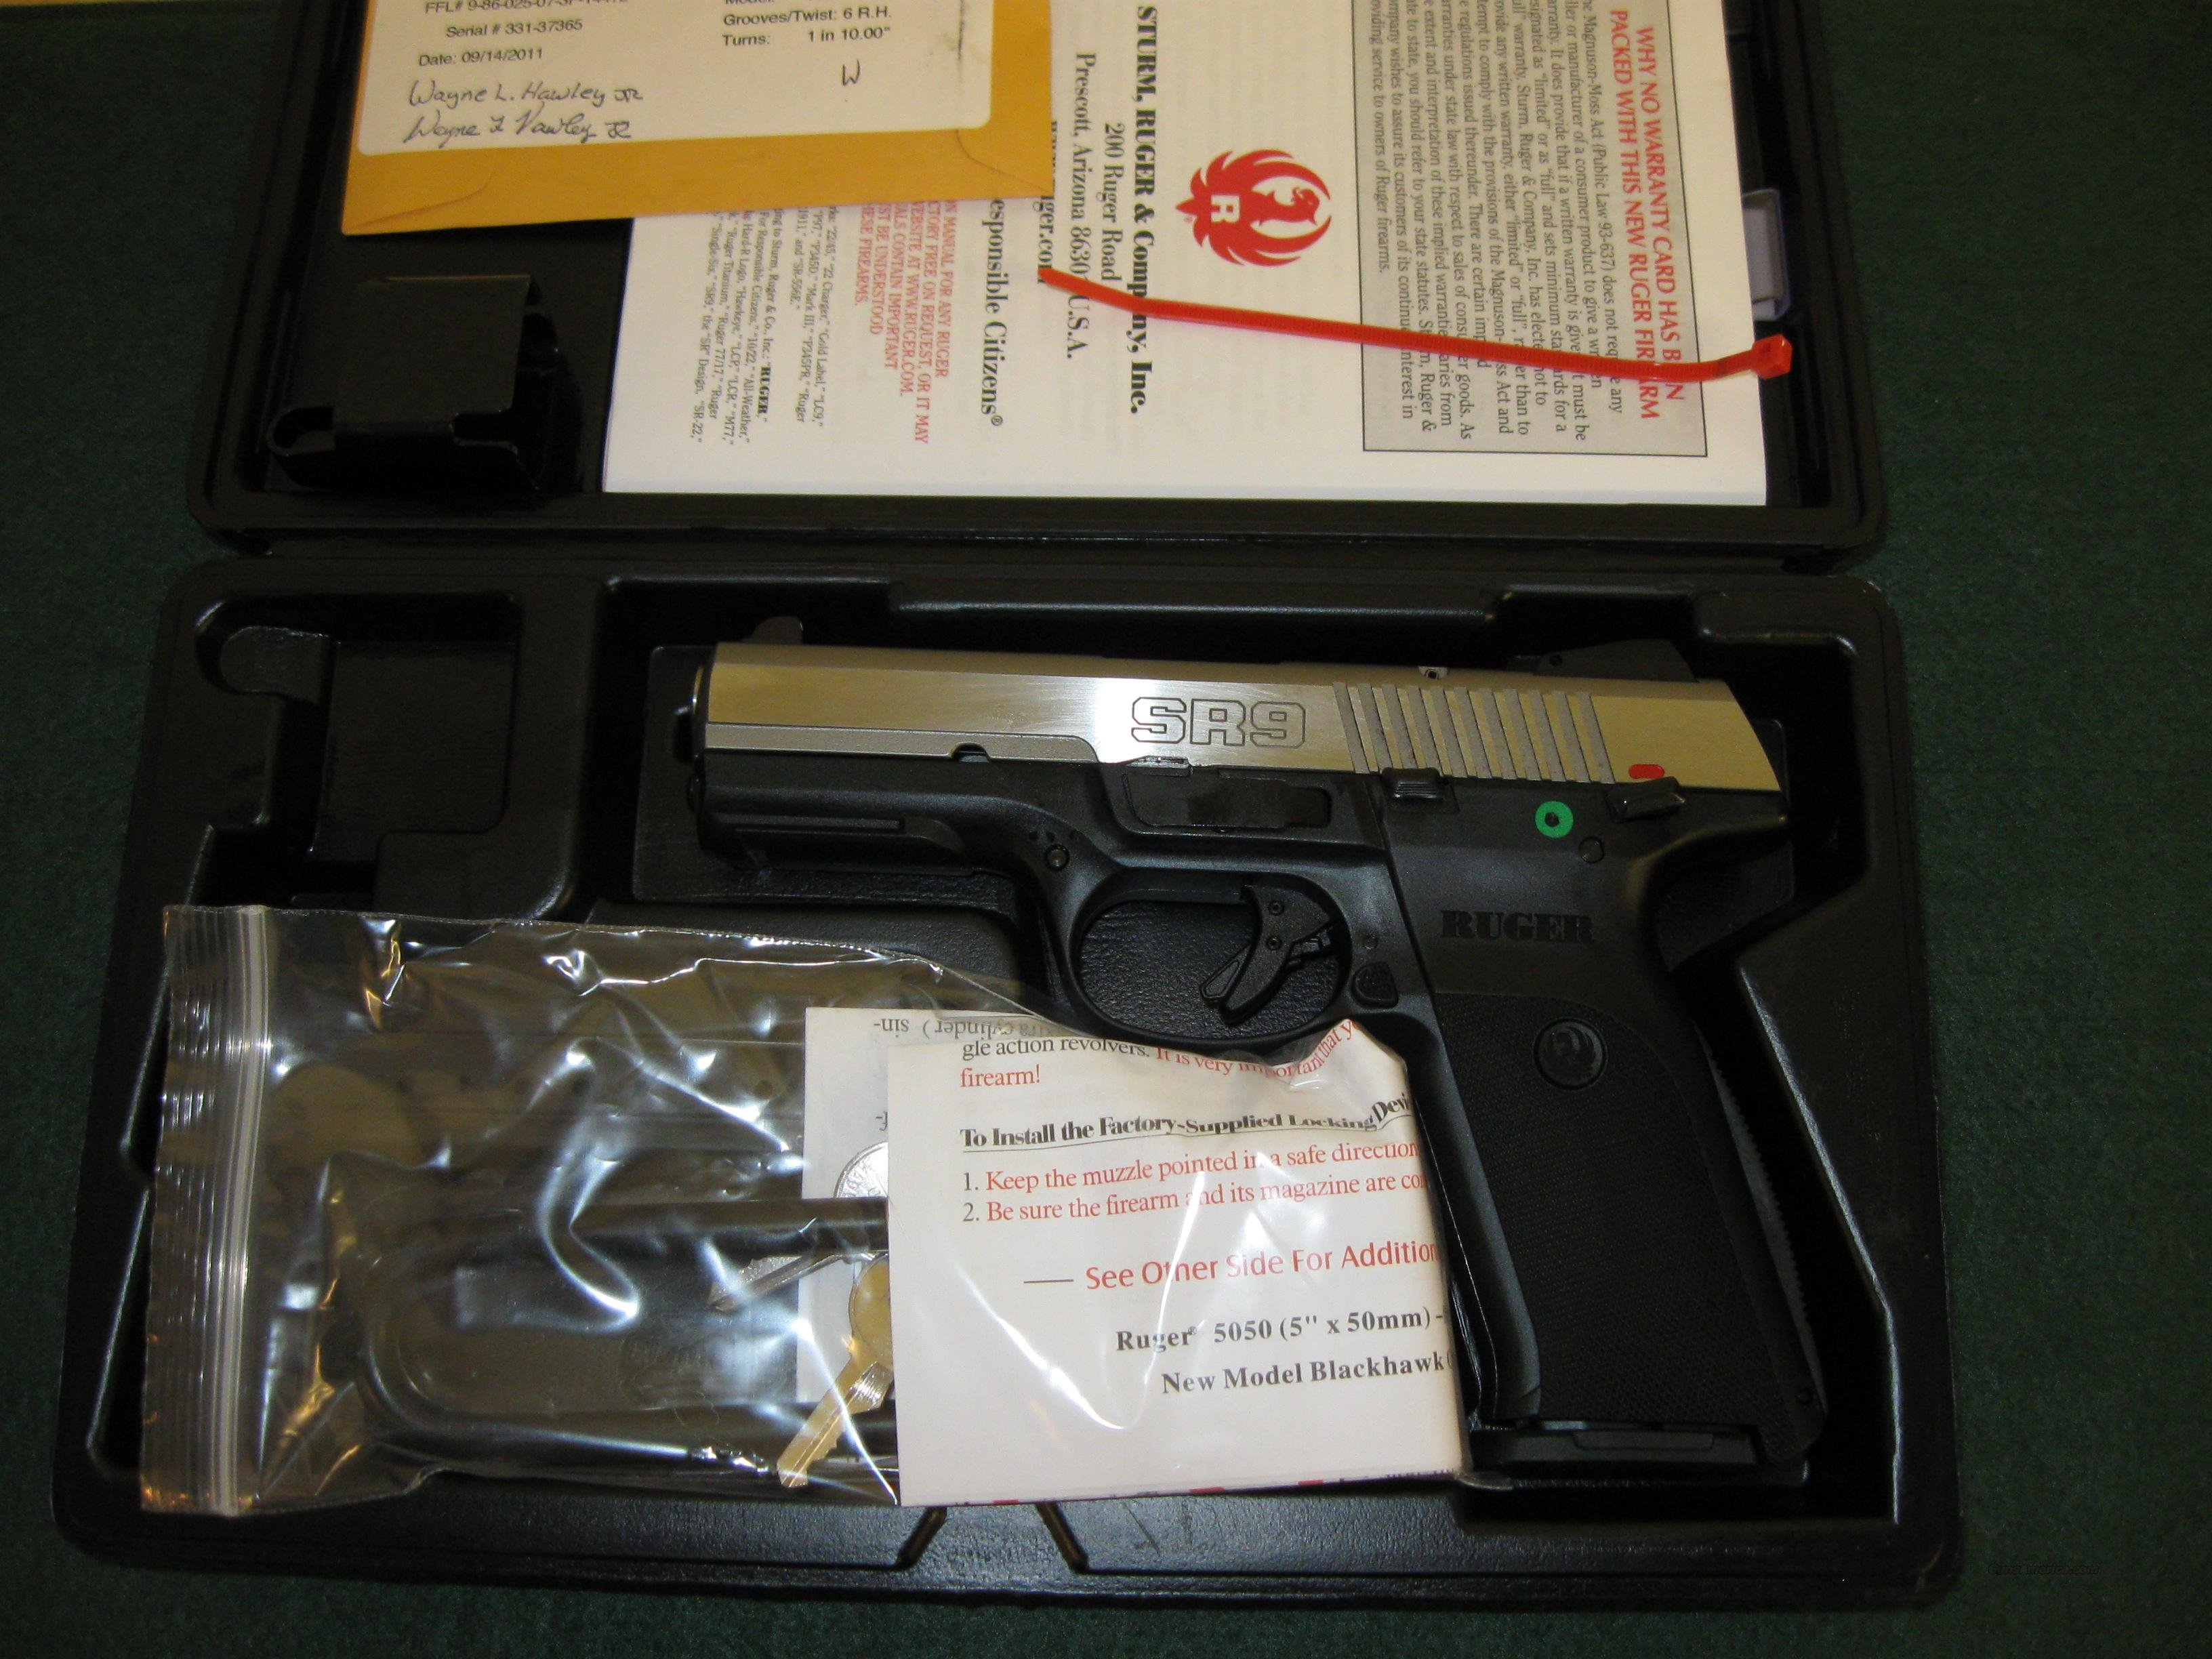 Ruger Model SR9 Semi Auto Pistol 3301, 9 MM, 4.1 in, Synthetic Grip, Black/Stainless Steel Finish, 17 Rd, Adj Sights, Rail  Guns > Pistols > Ruger Semi-Auto Pistols > SR9